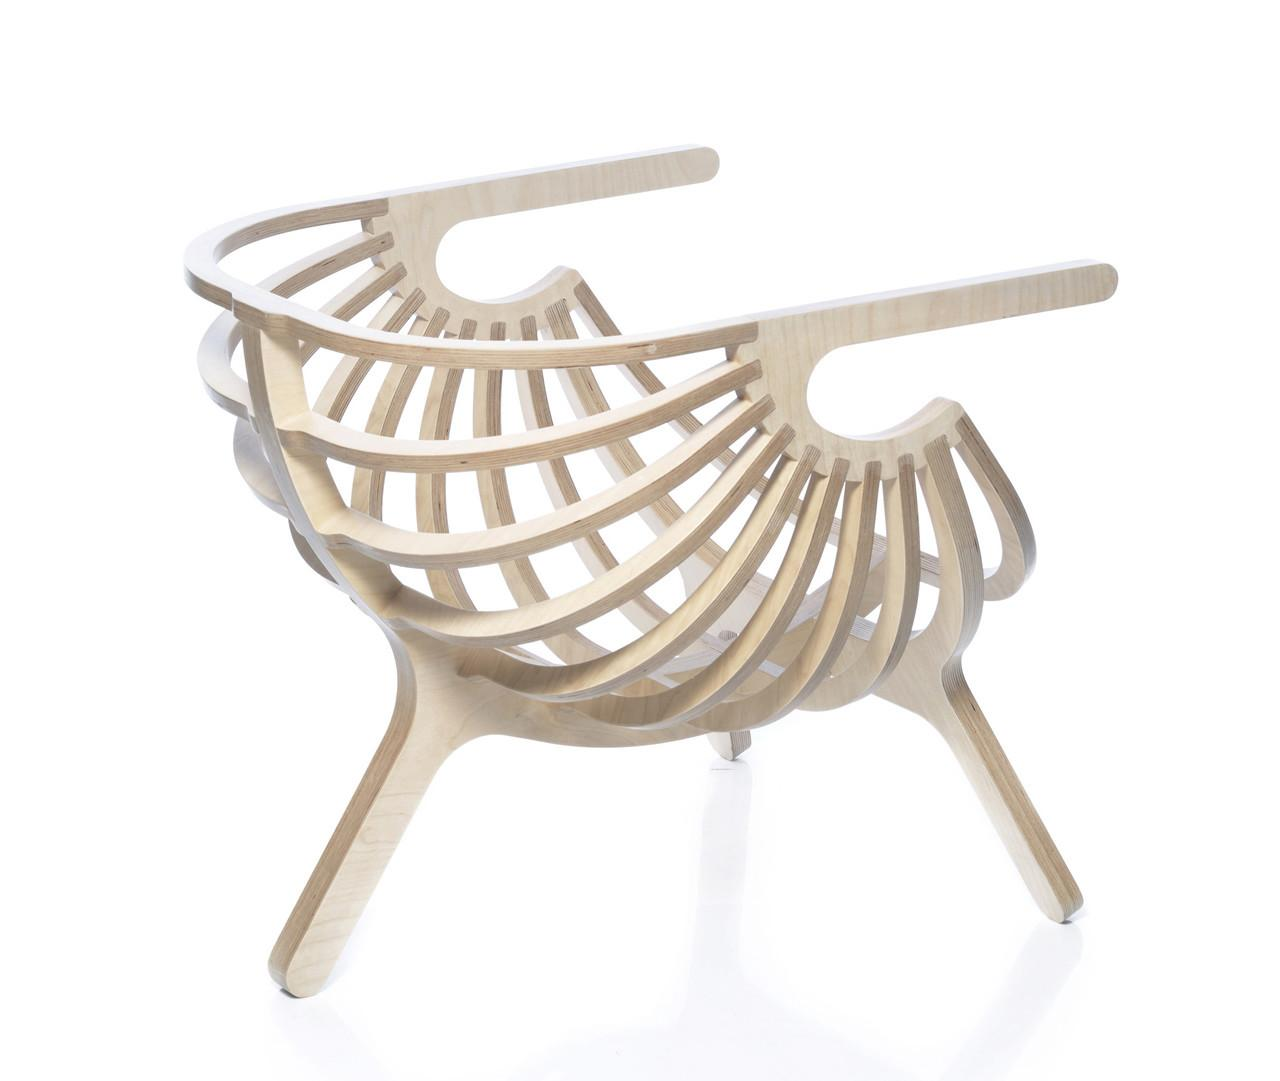 Unique Plywood Chair Design Branca Stylehomes